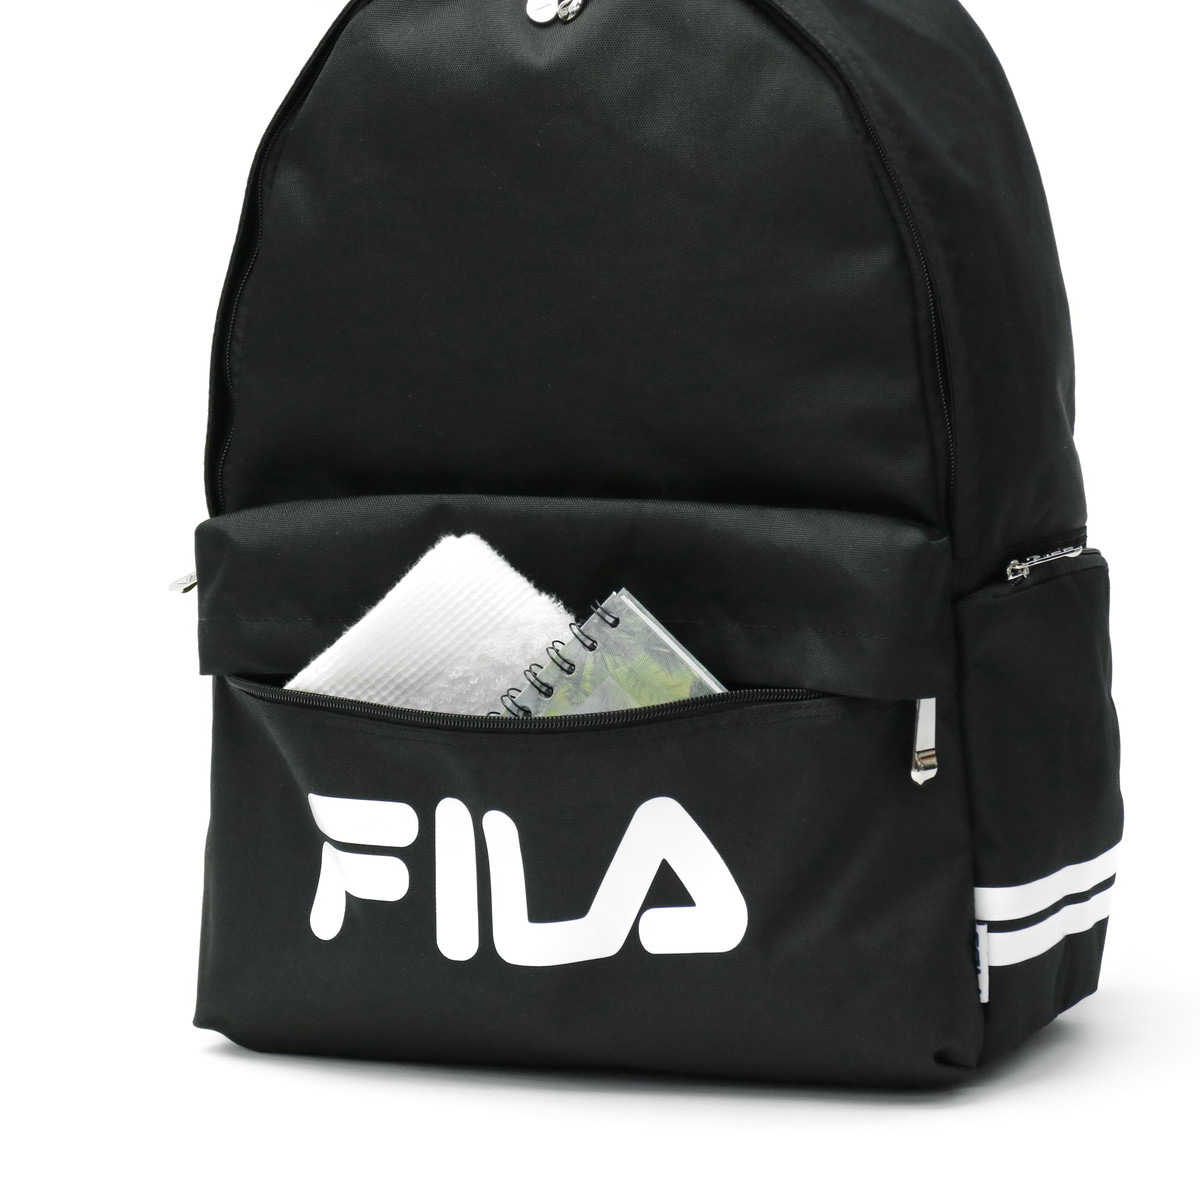 9114e63152 GALLERIA Bag-Luggage  FILA Backpack commuter school bag B4 men s ...